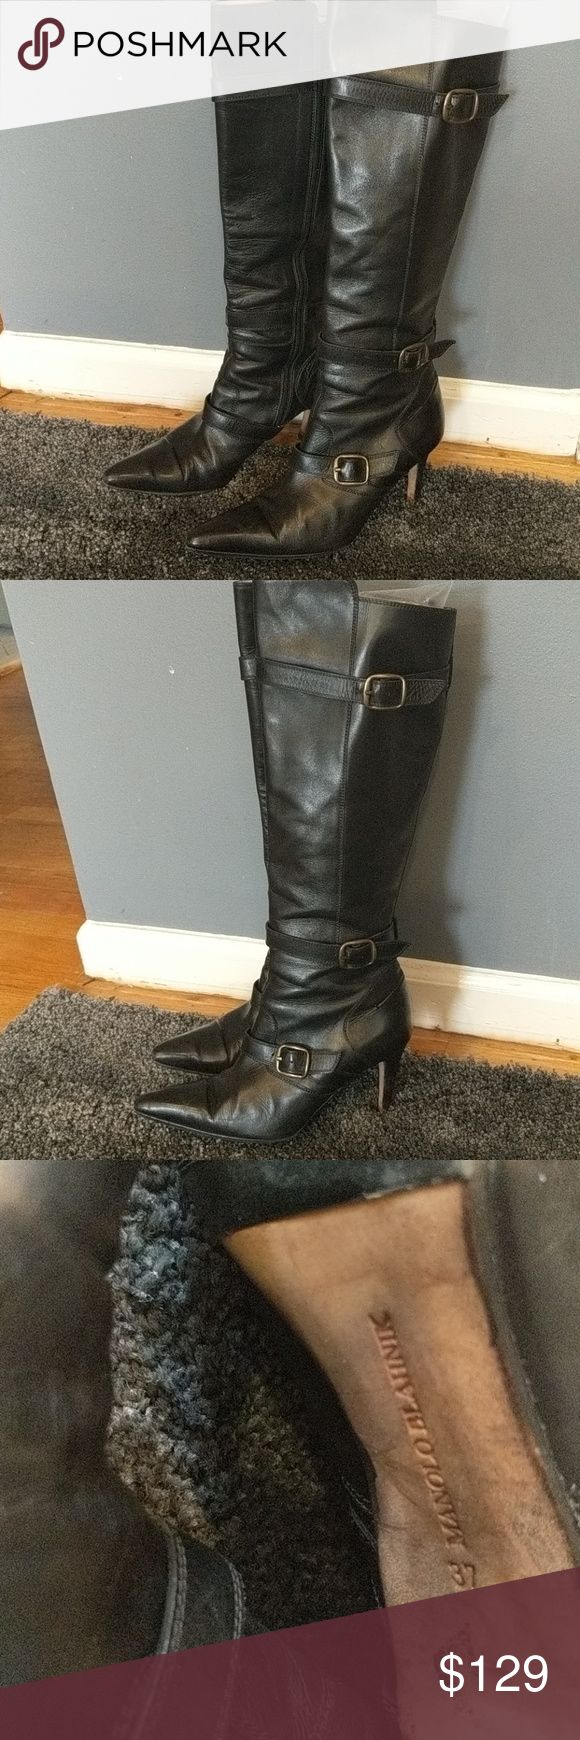 Authentic Manolo Blahnik tall boots Authentic Manolo Blahnik black leather boots. Come to knee. Buckles on the side. Inner side zipper. Tan interior. Great condition. Size 37. These were always a little tight for me so I purchased a 38, need to gives these a new home. boots have had soles redone. Manolo Blahnik Shoes Heeled Boots